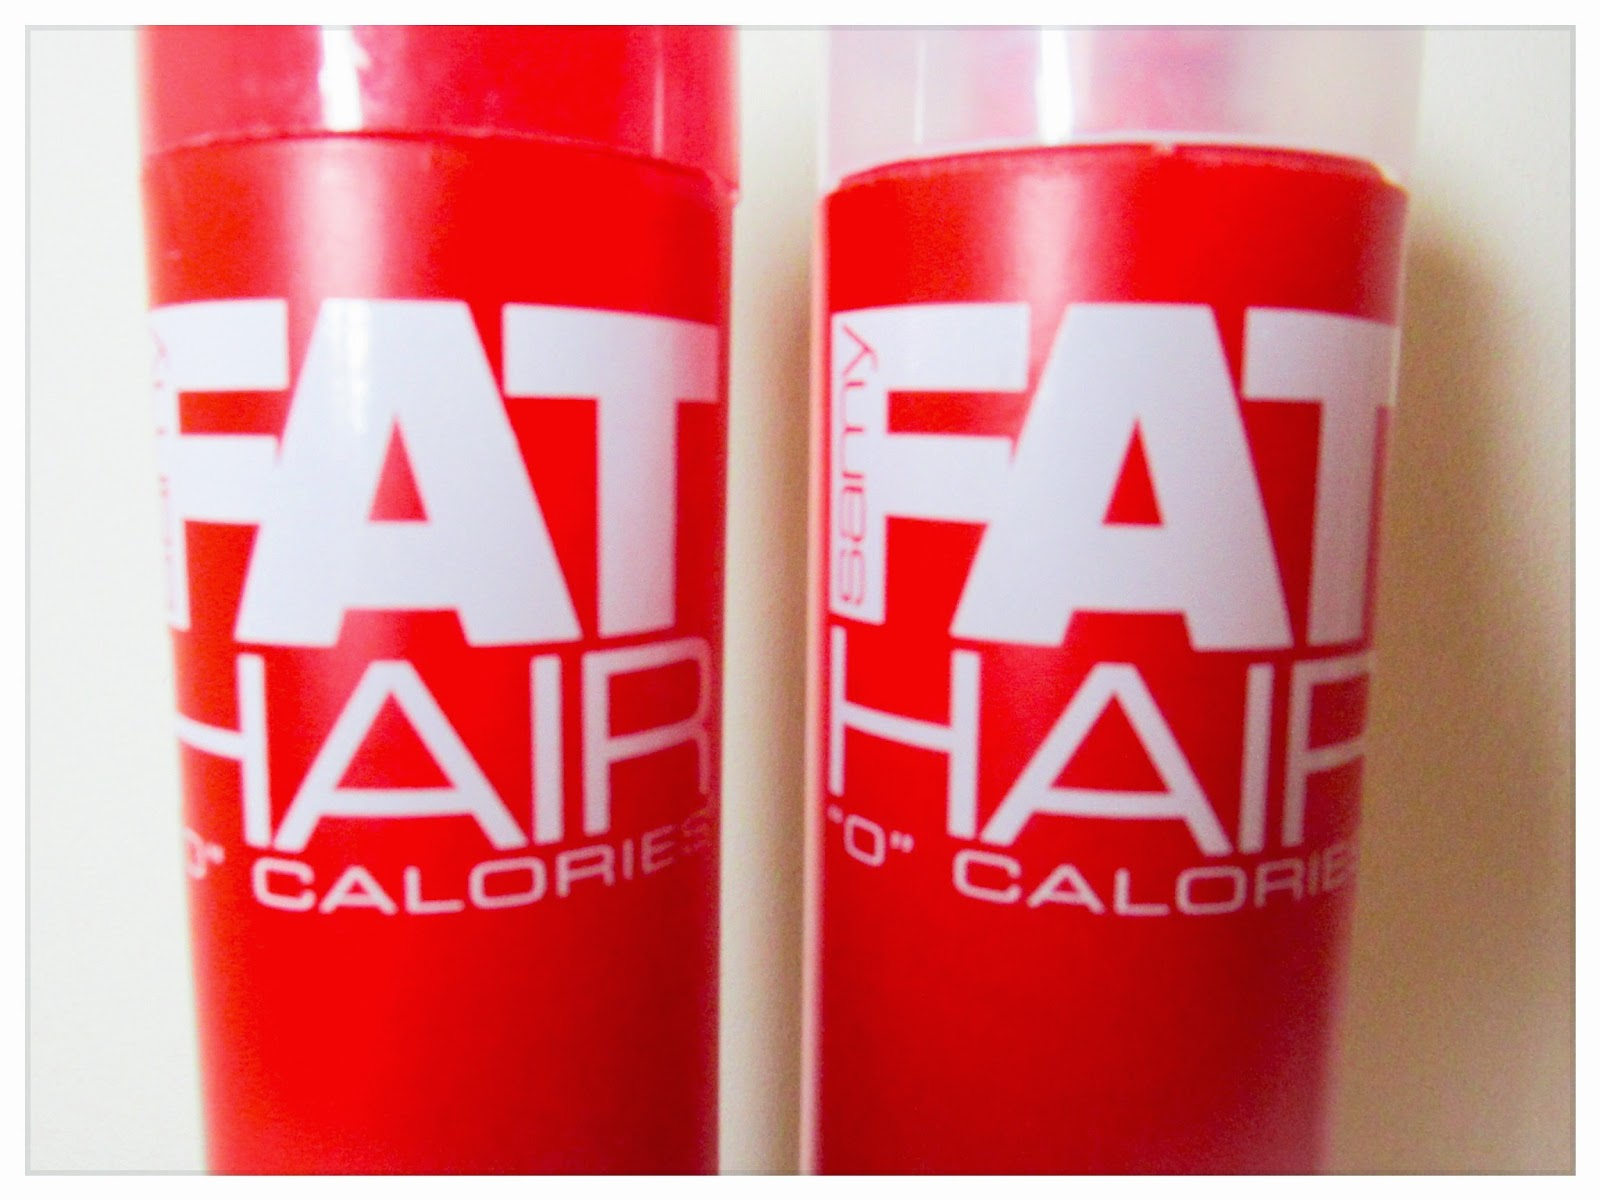 Samy-Fat-Hair-0-Calories-Thickening-Shampoo-and-Conditioner